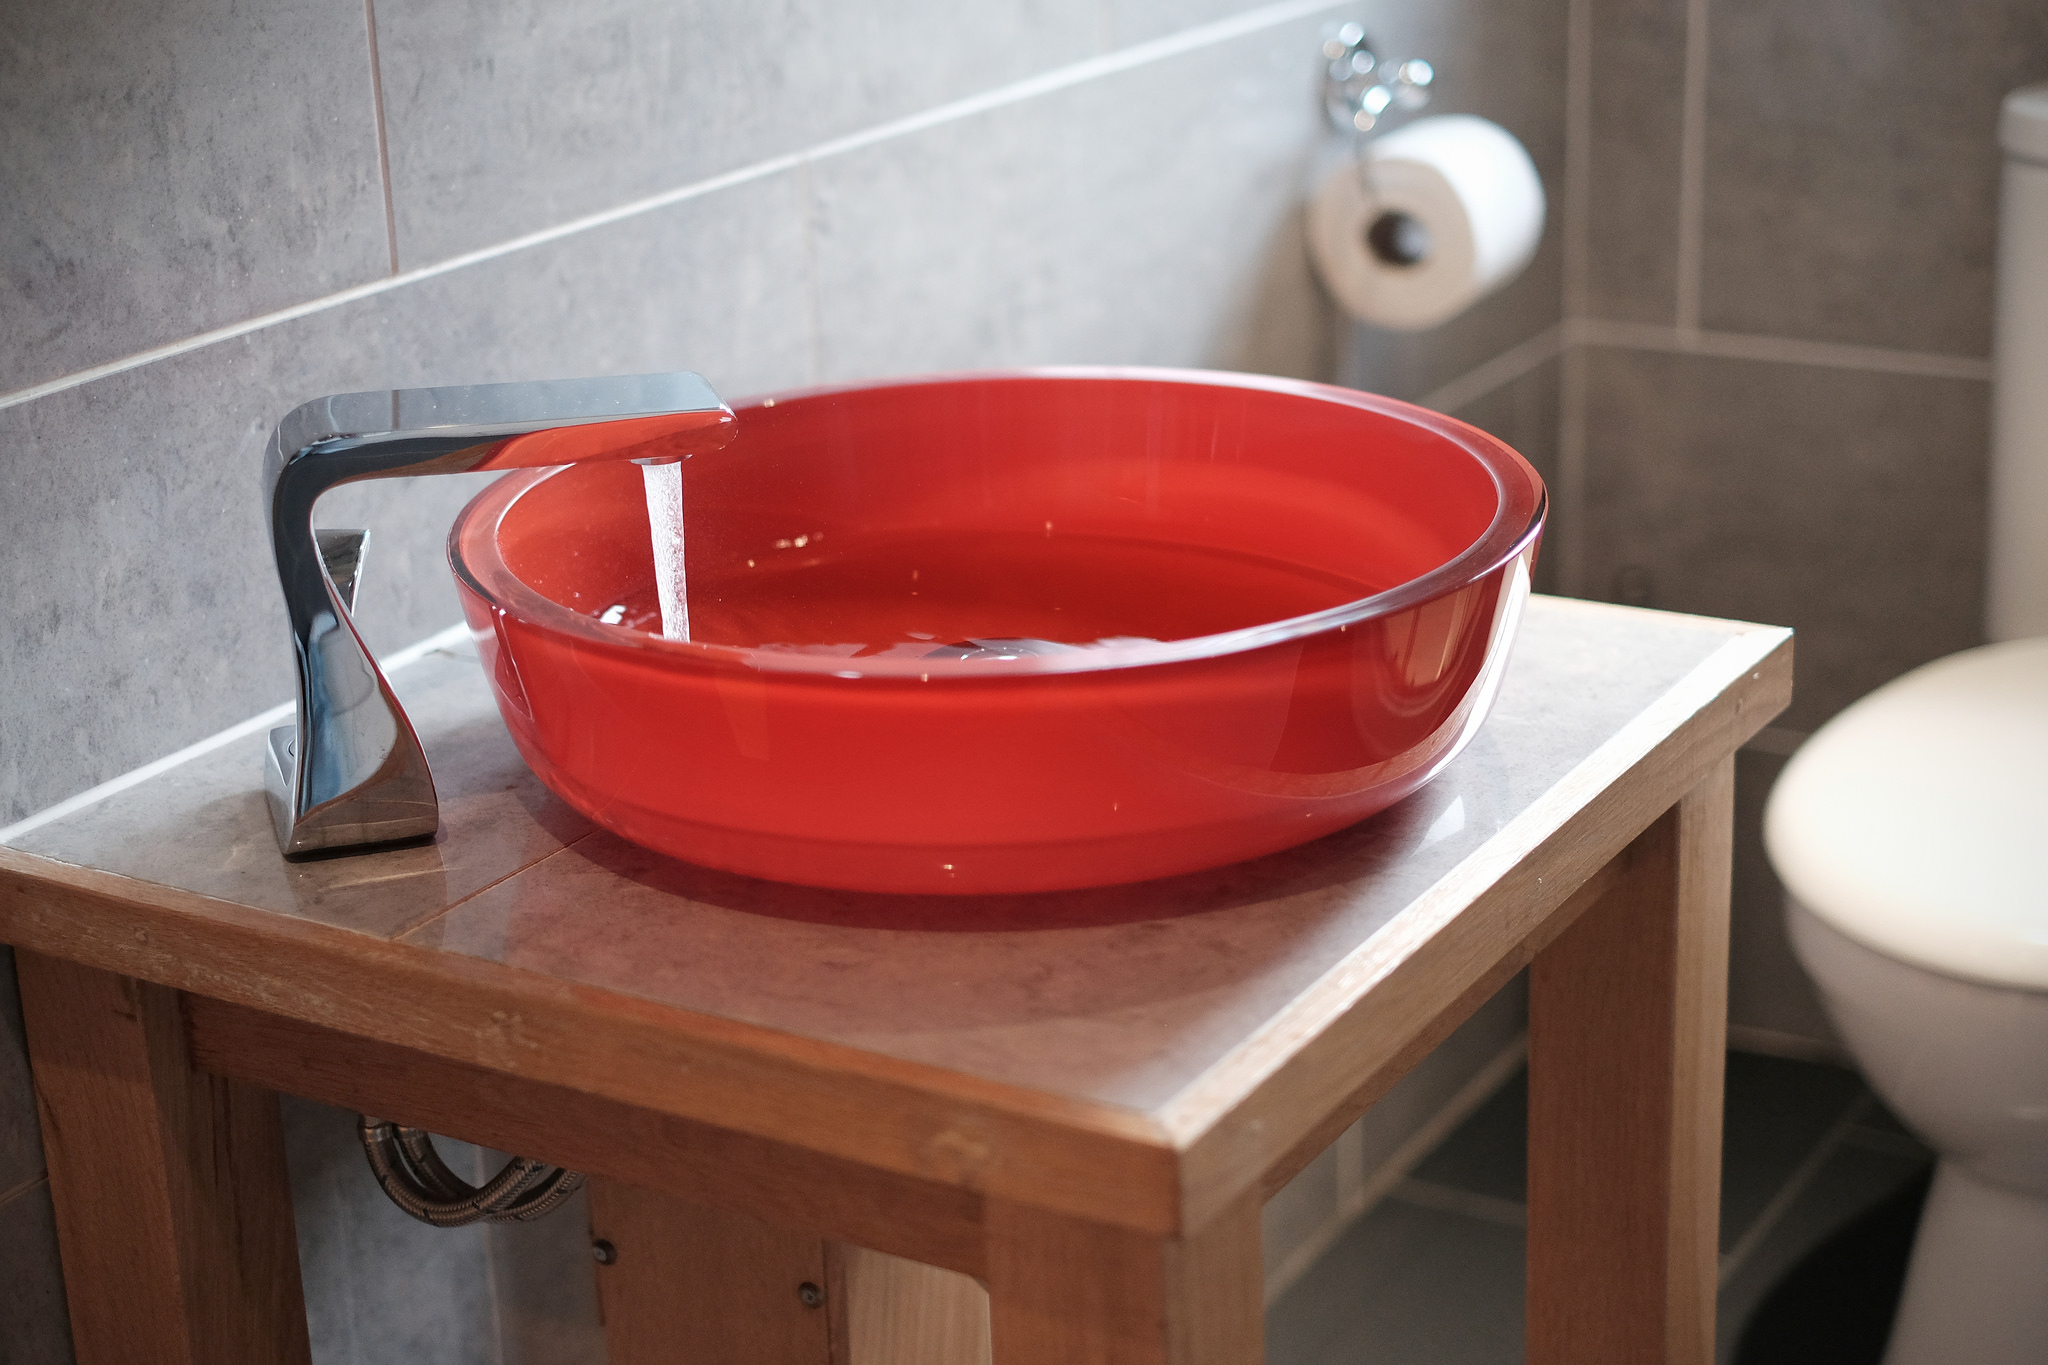 The red hand basin in the en-suite bathroom